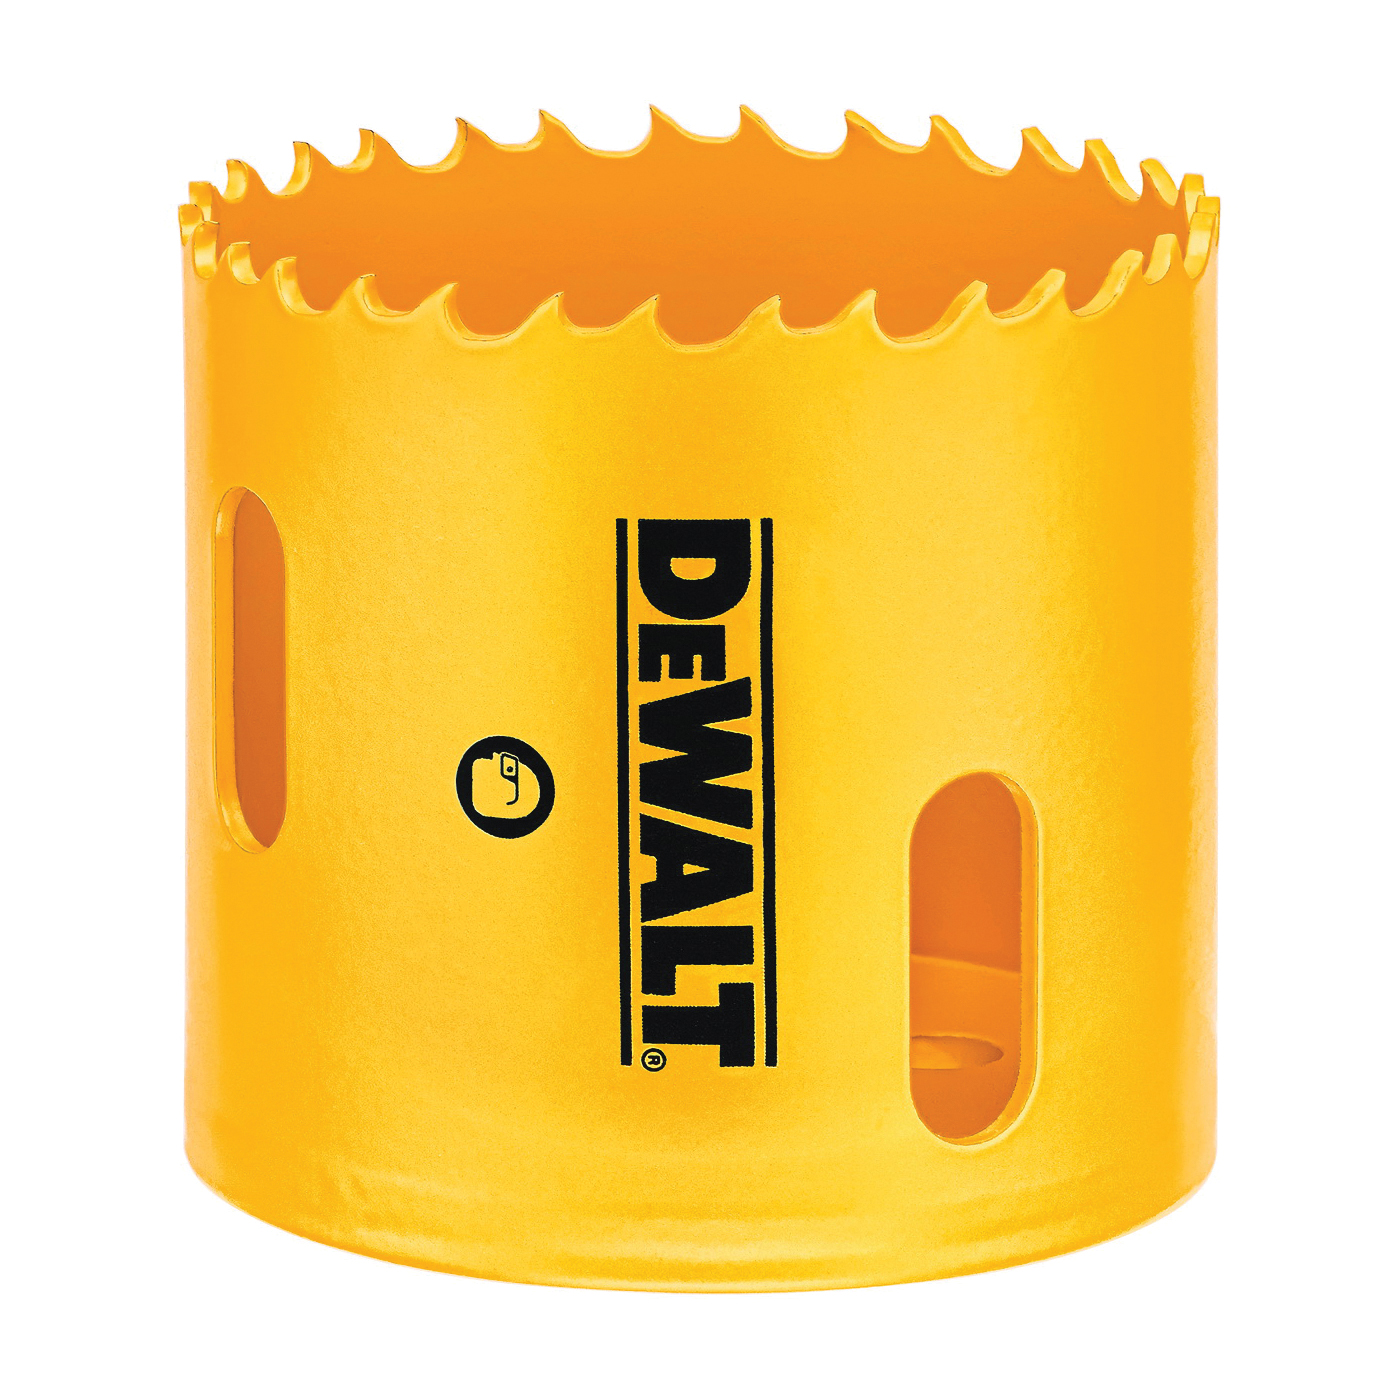 Picture of DeWALT D180034 Hole Saw, 2-1/8 in Dia, 1-13/16 in D Cutting, 5/8-18 Arbor, 4/5 TPI, HSS Cutting Edge